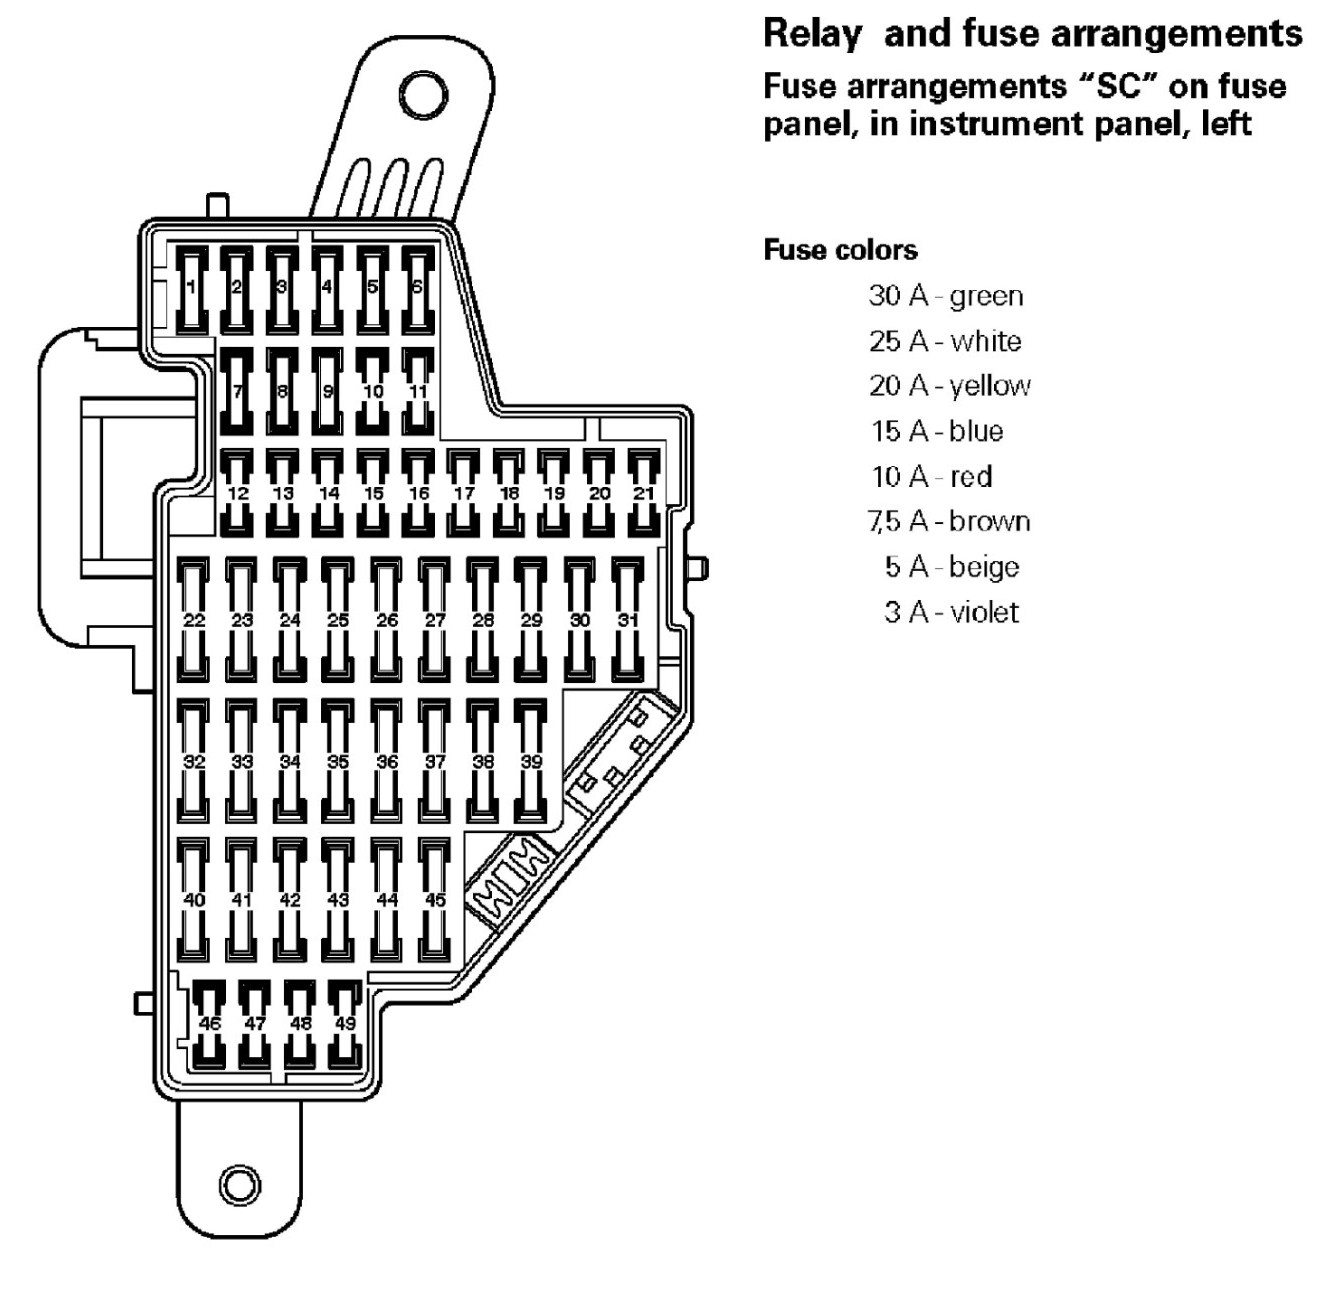 hight resolution of 2006 vw jetta fuse box blog wiring diagram 2006 jetta fuse panel diagram mk5 jetta fuse box diagram